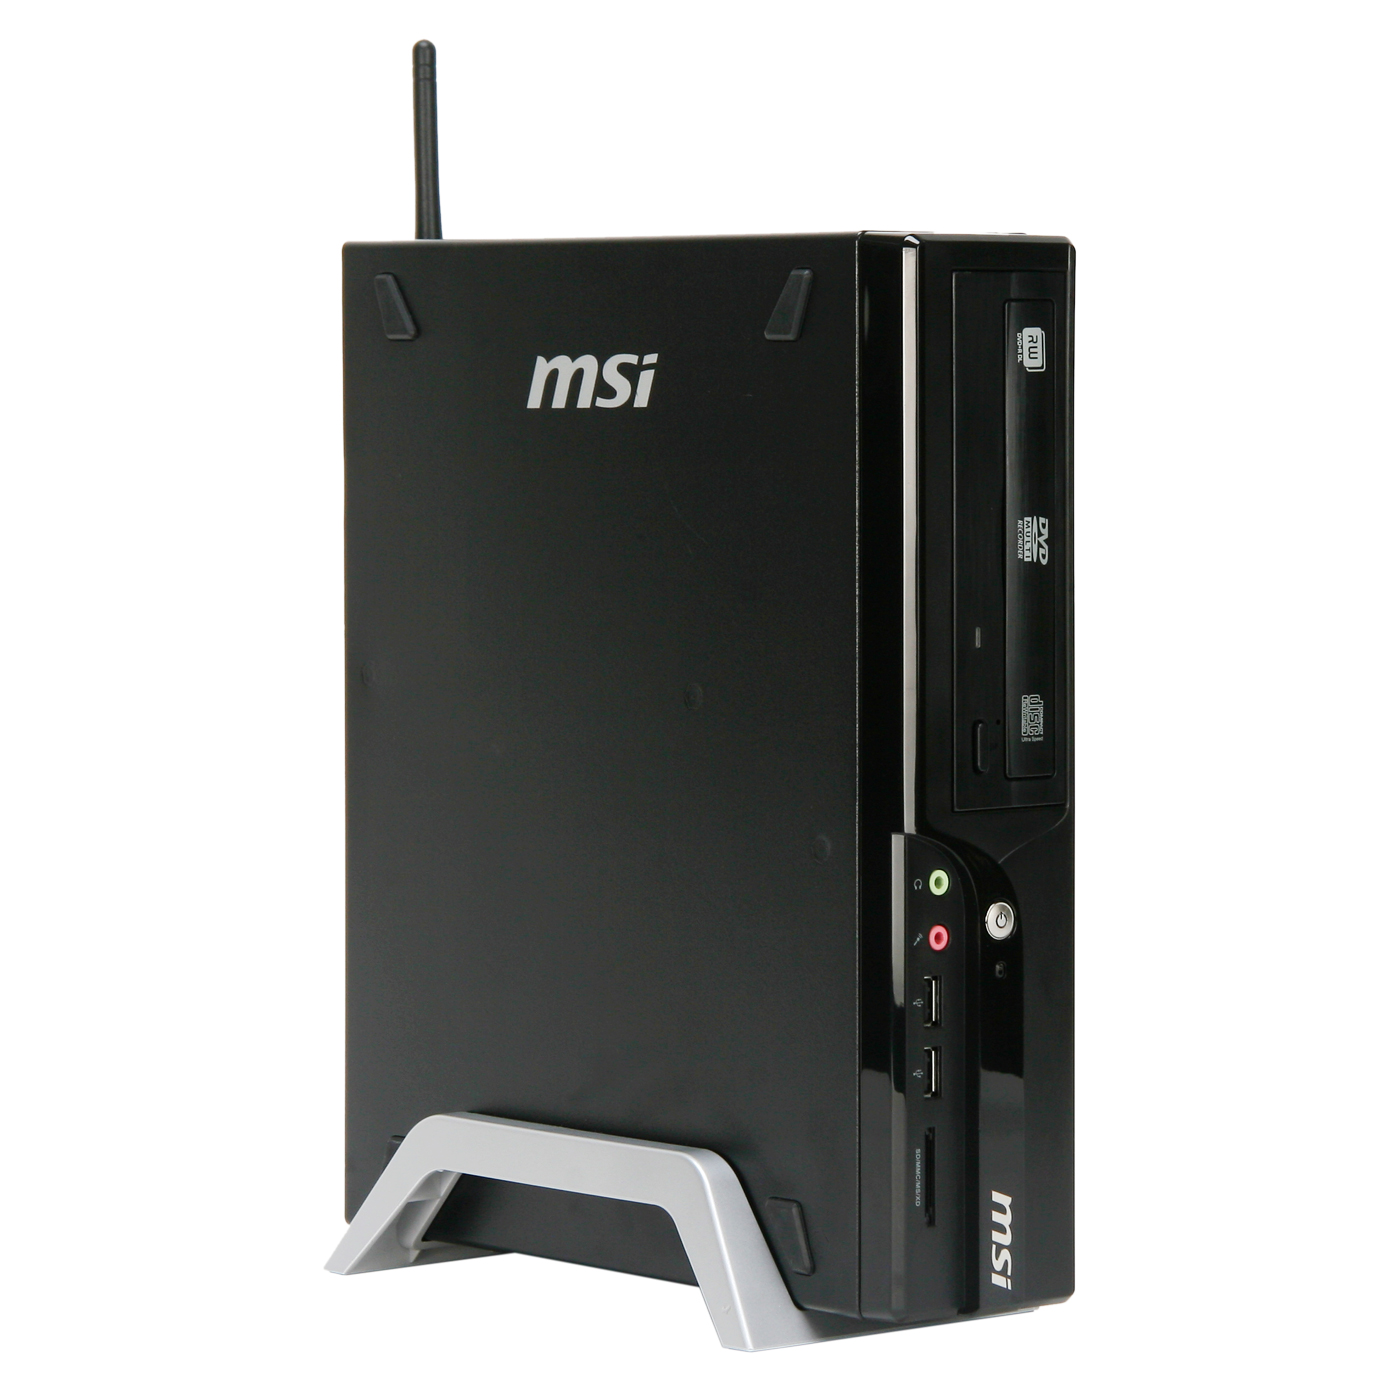 msi wind box de500 014x pc de bureau msi sur. Black Bedroom Furniture Sets. Home Design Ideas